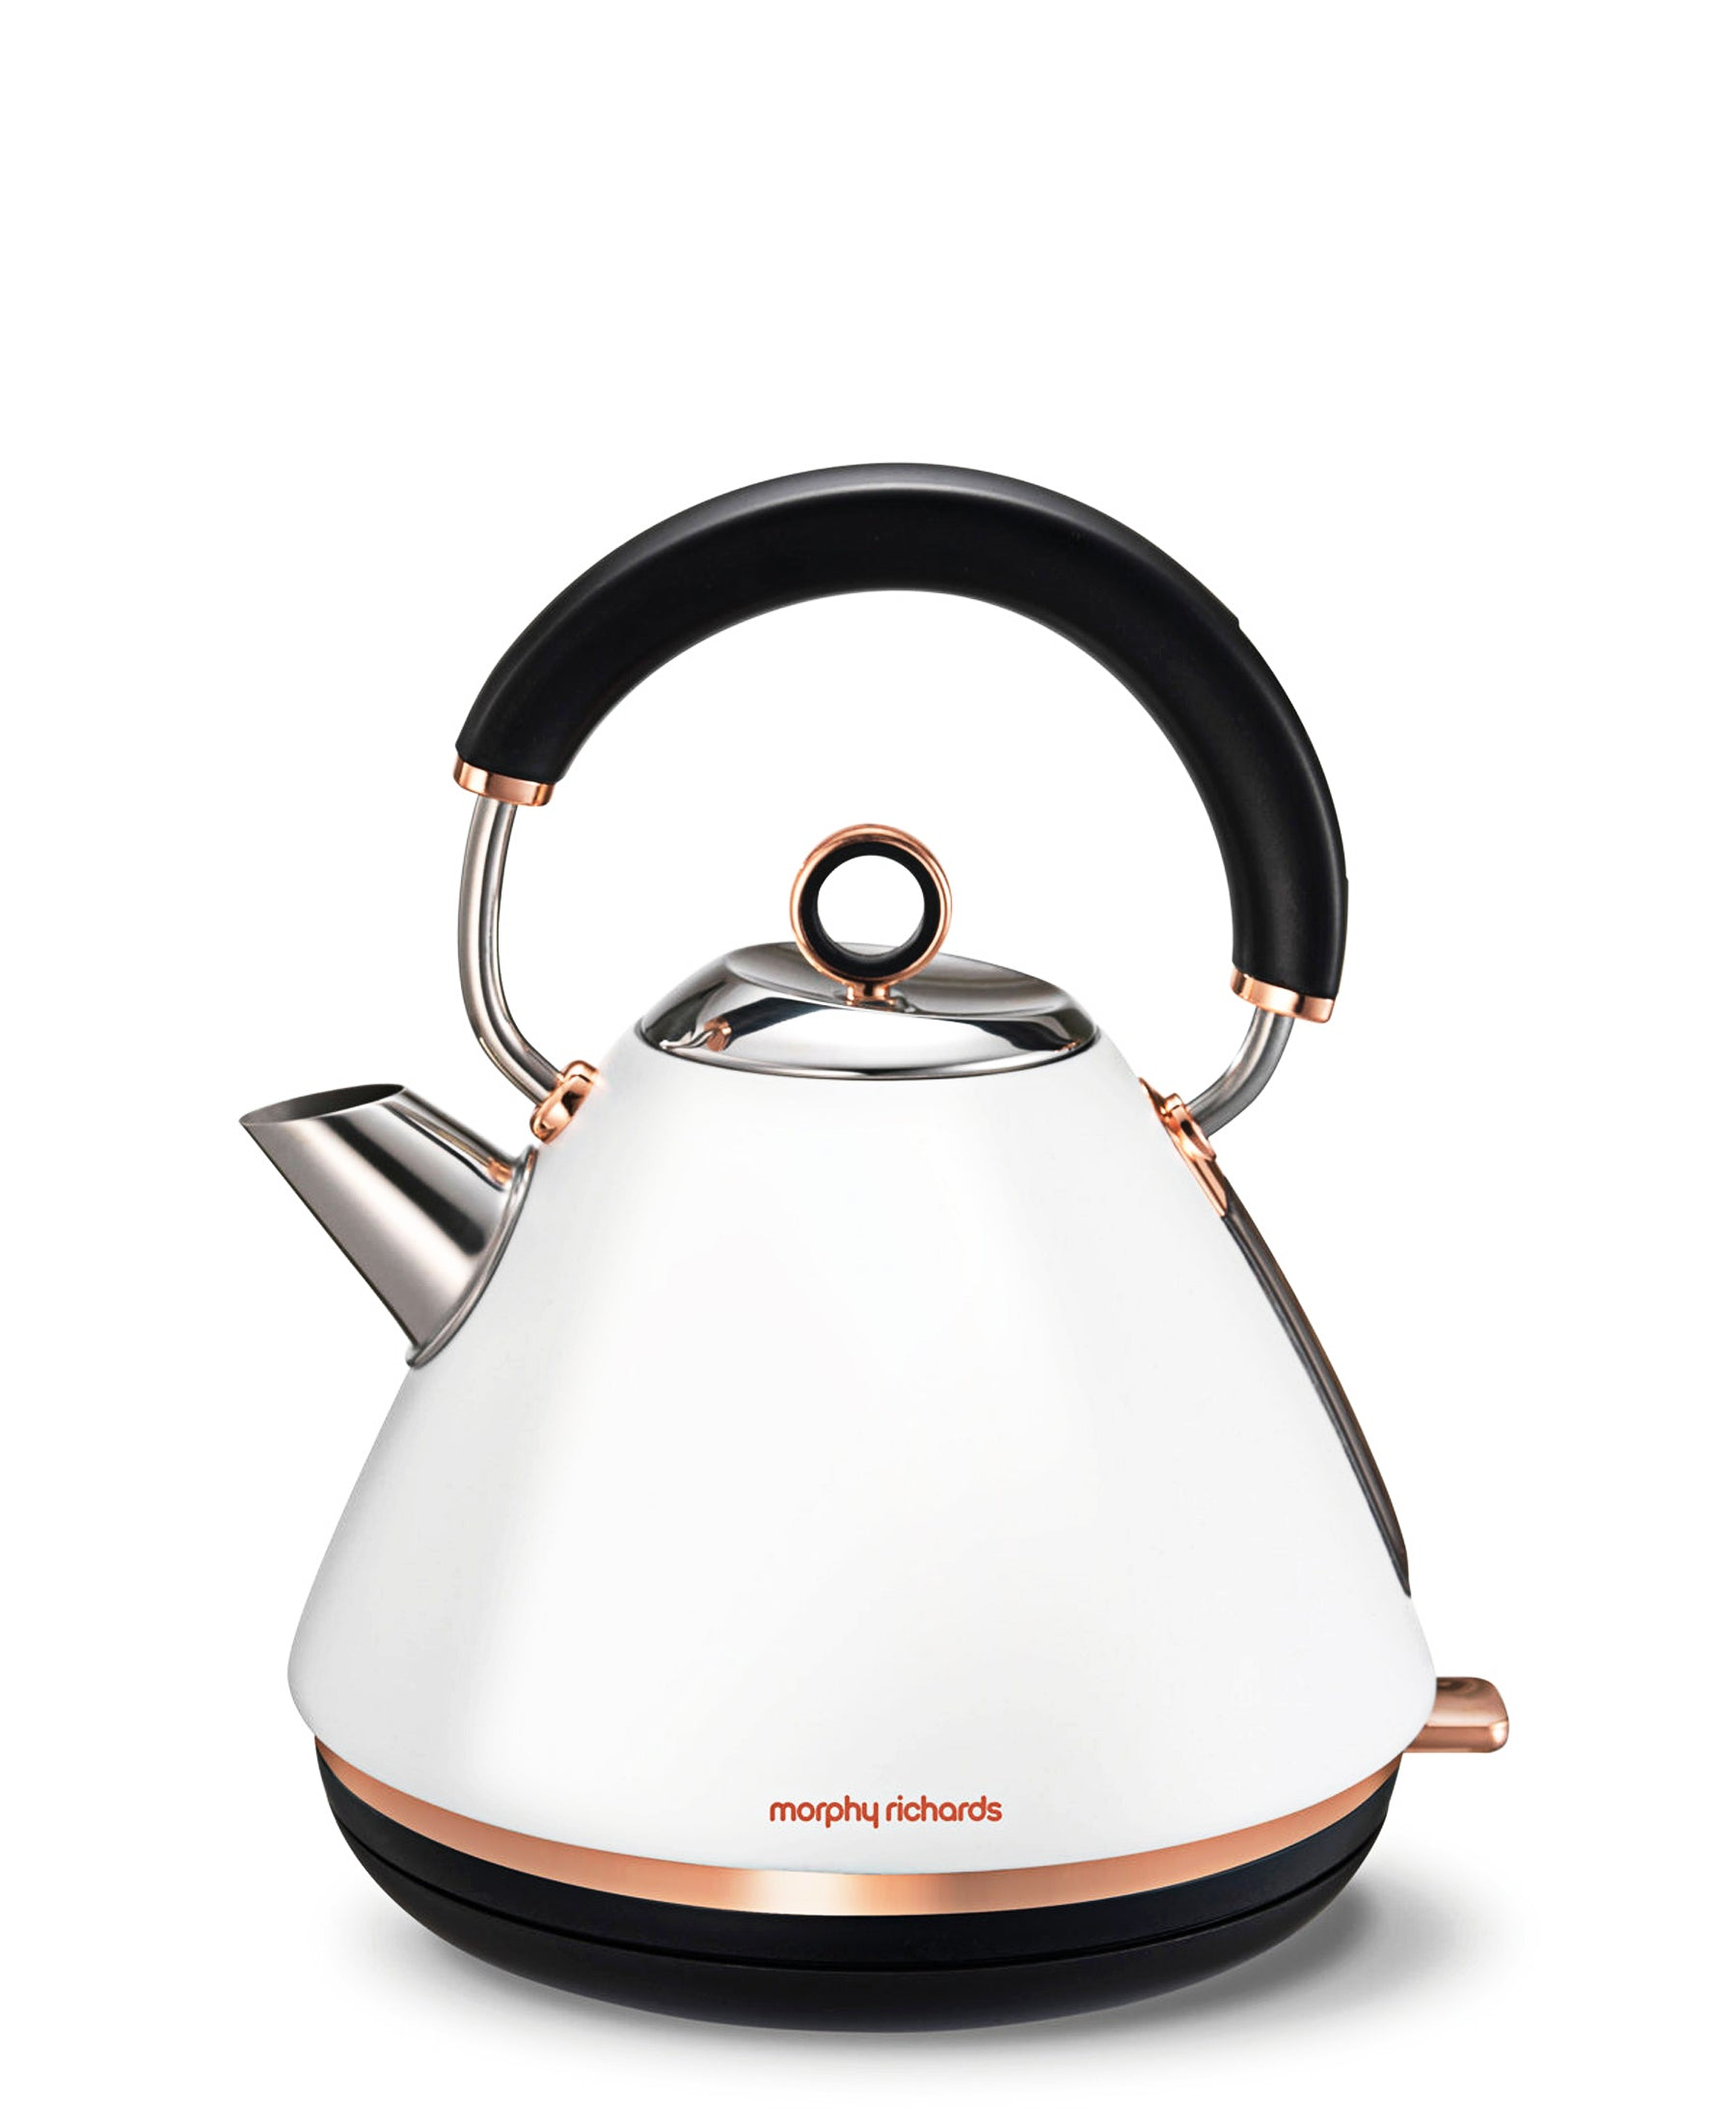 Morphy Richards Accents Kettle 1.5LT - White & Rose Gold